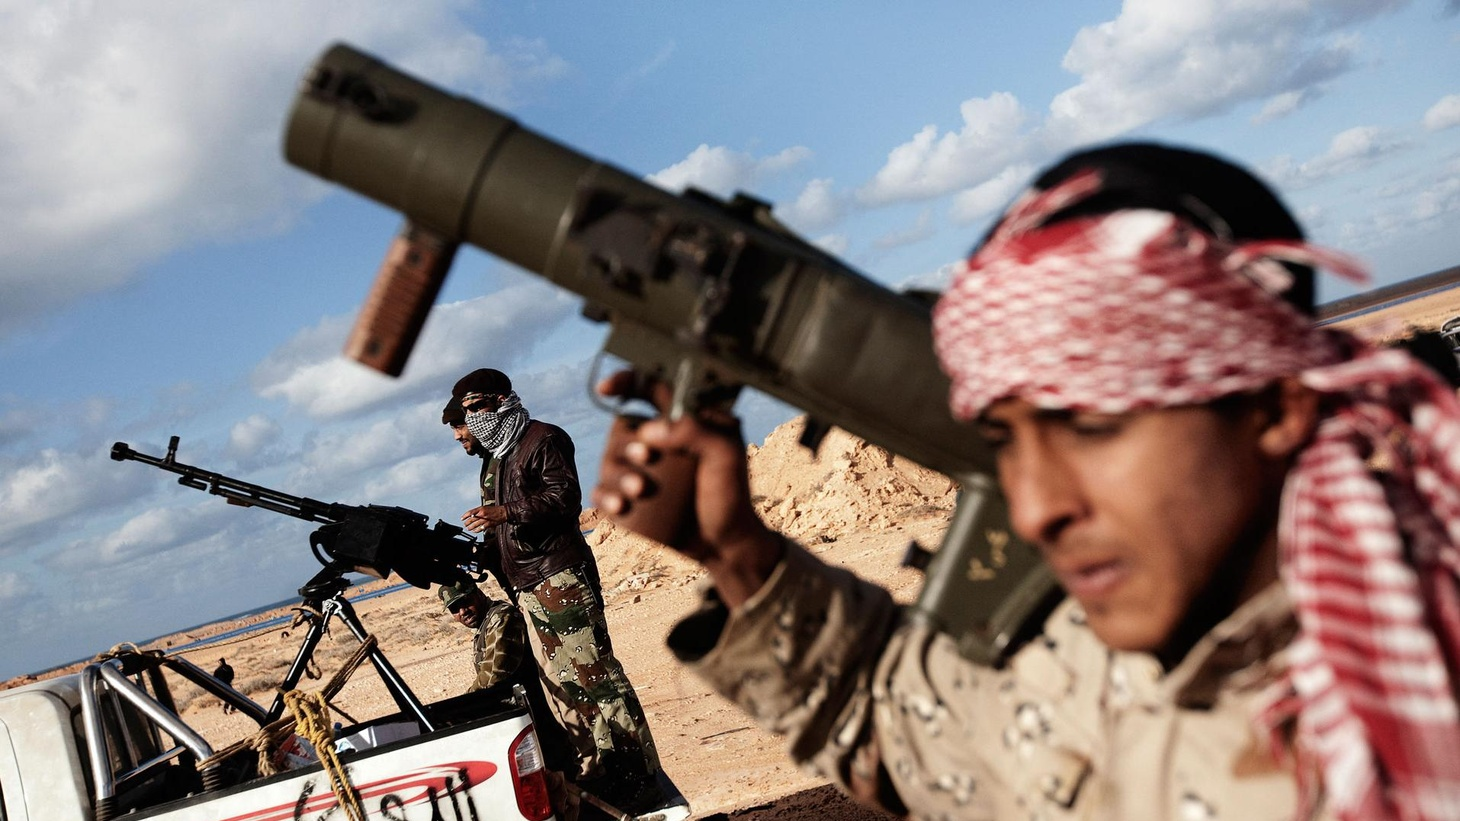 Moammar Gadhafi appears to have staved off the rebel onslaught, at least for the moment. With Libya divided, is it time for international intervention. What are the risks for the US to lead the way? What are the risks of inaction? Also, gas prices jump 33 cents in two weeks, and a hearing on Muslim Americans and terrorism. On Reporter's Notebook, are Peter King's hearings on Muslim Americans and terrorism a defense requirement or hypocrisy?